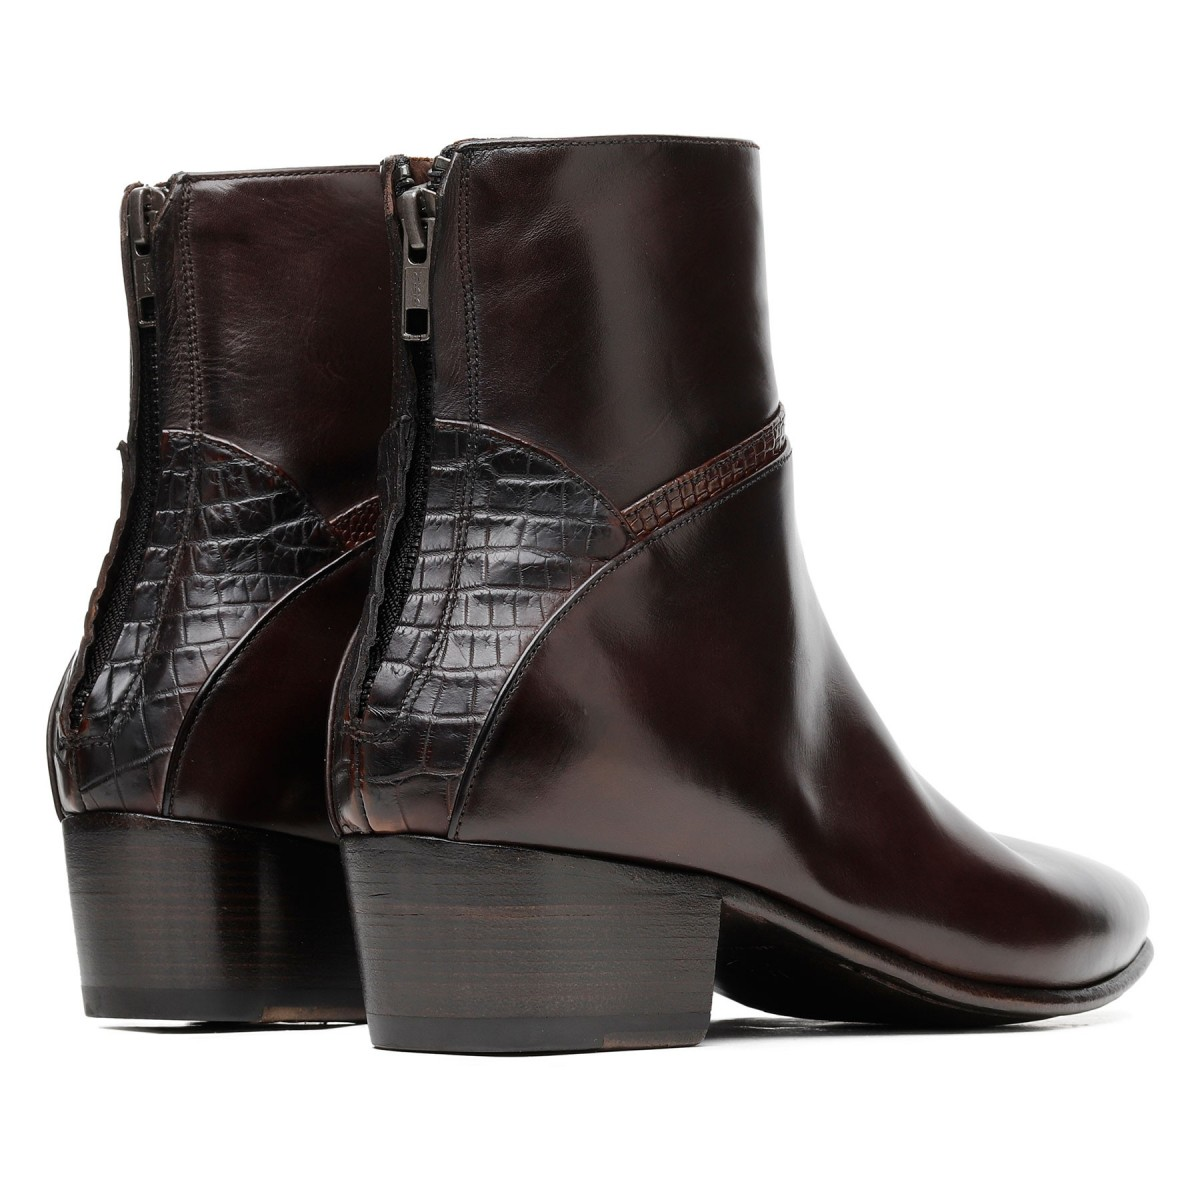 Brown calf leather ankle boots